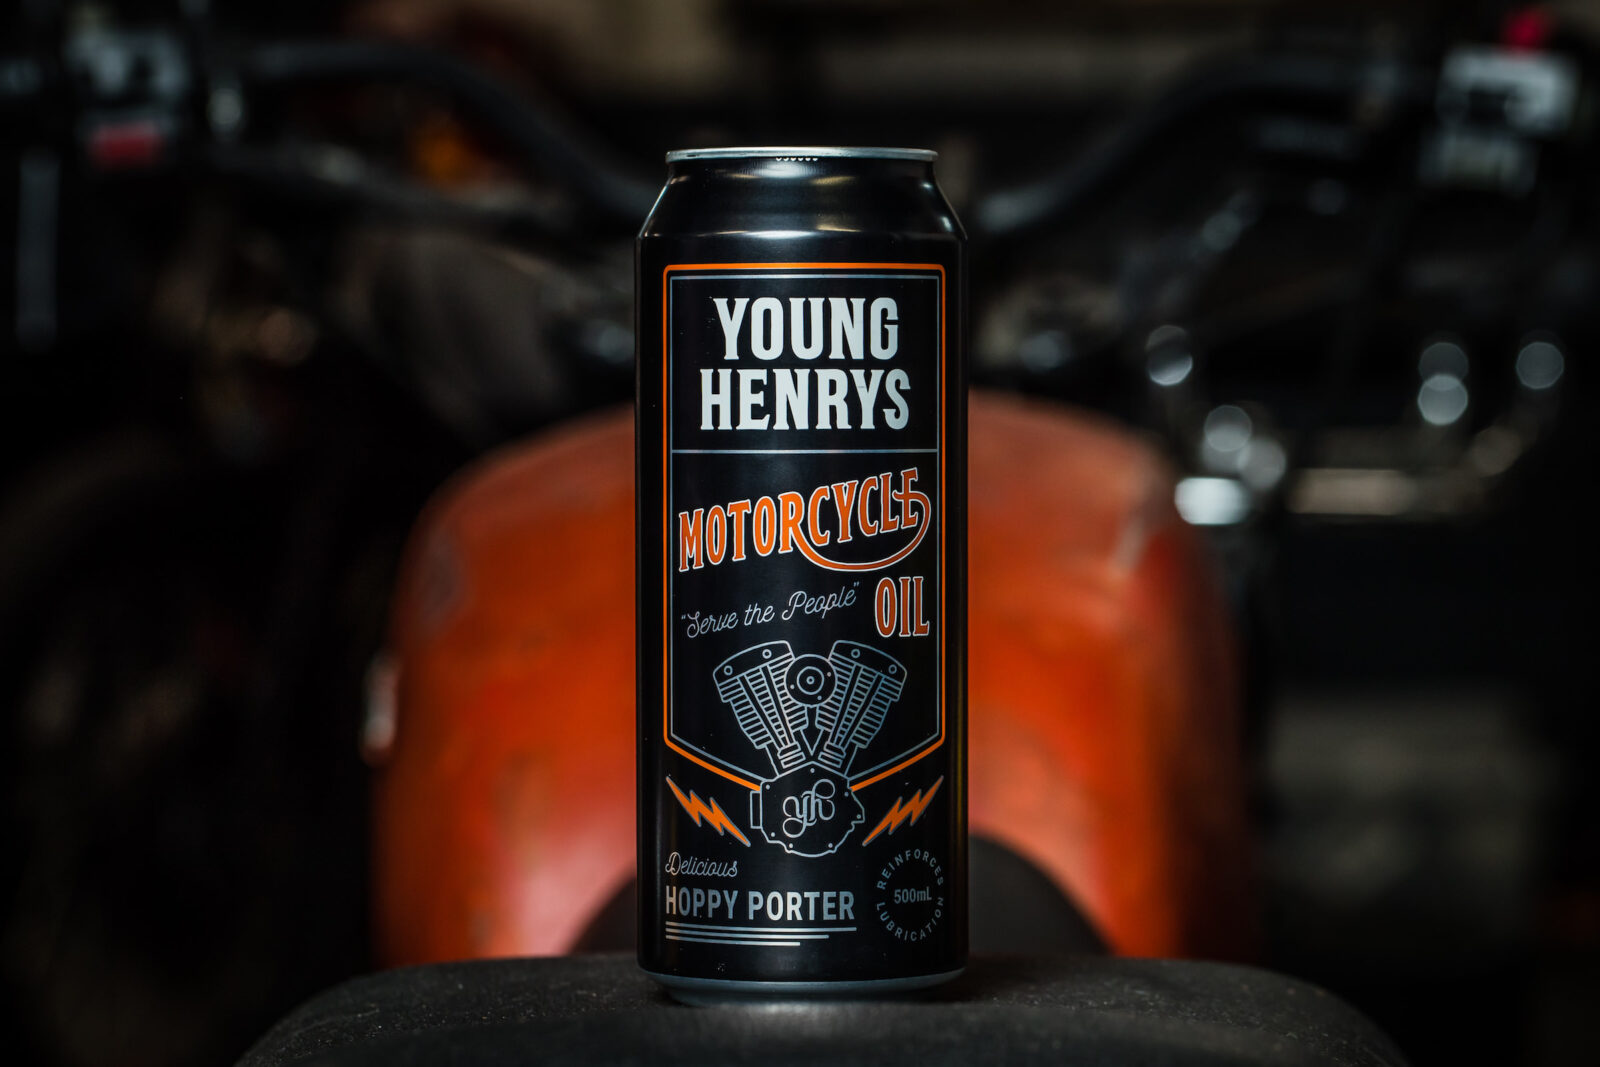 Garage Brewing Restaurant Young Henrys Motorcycle Oil The Perfect Garage Beer